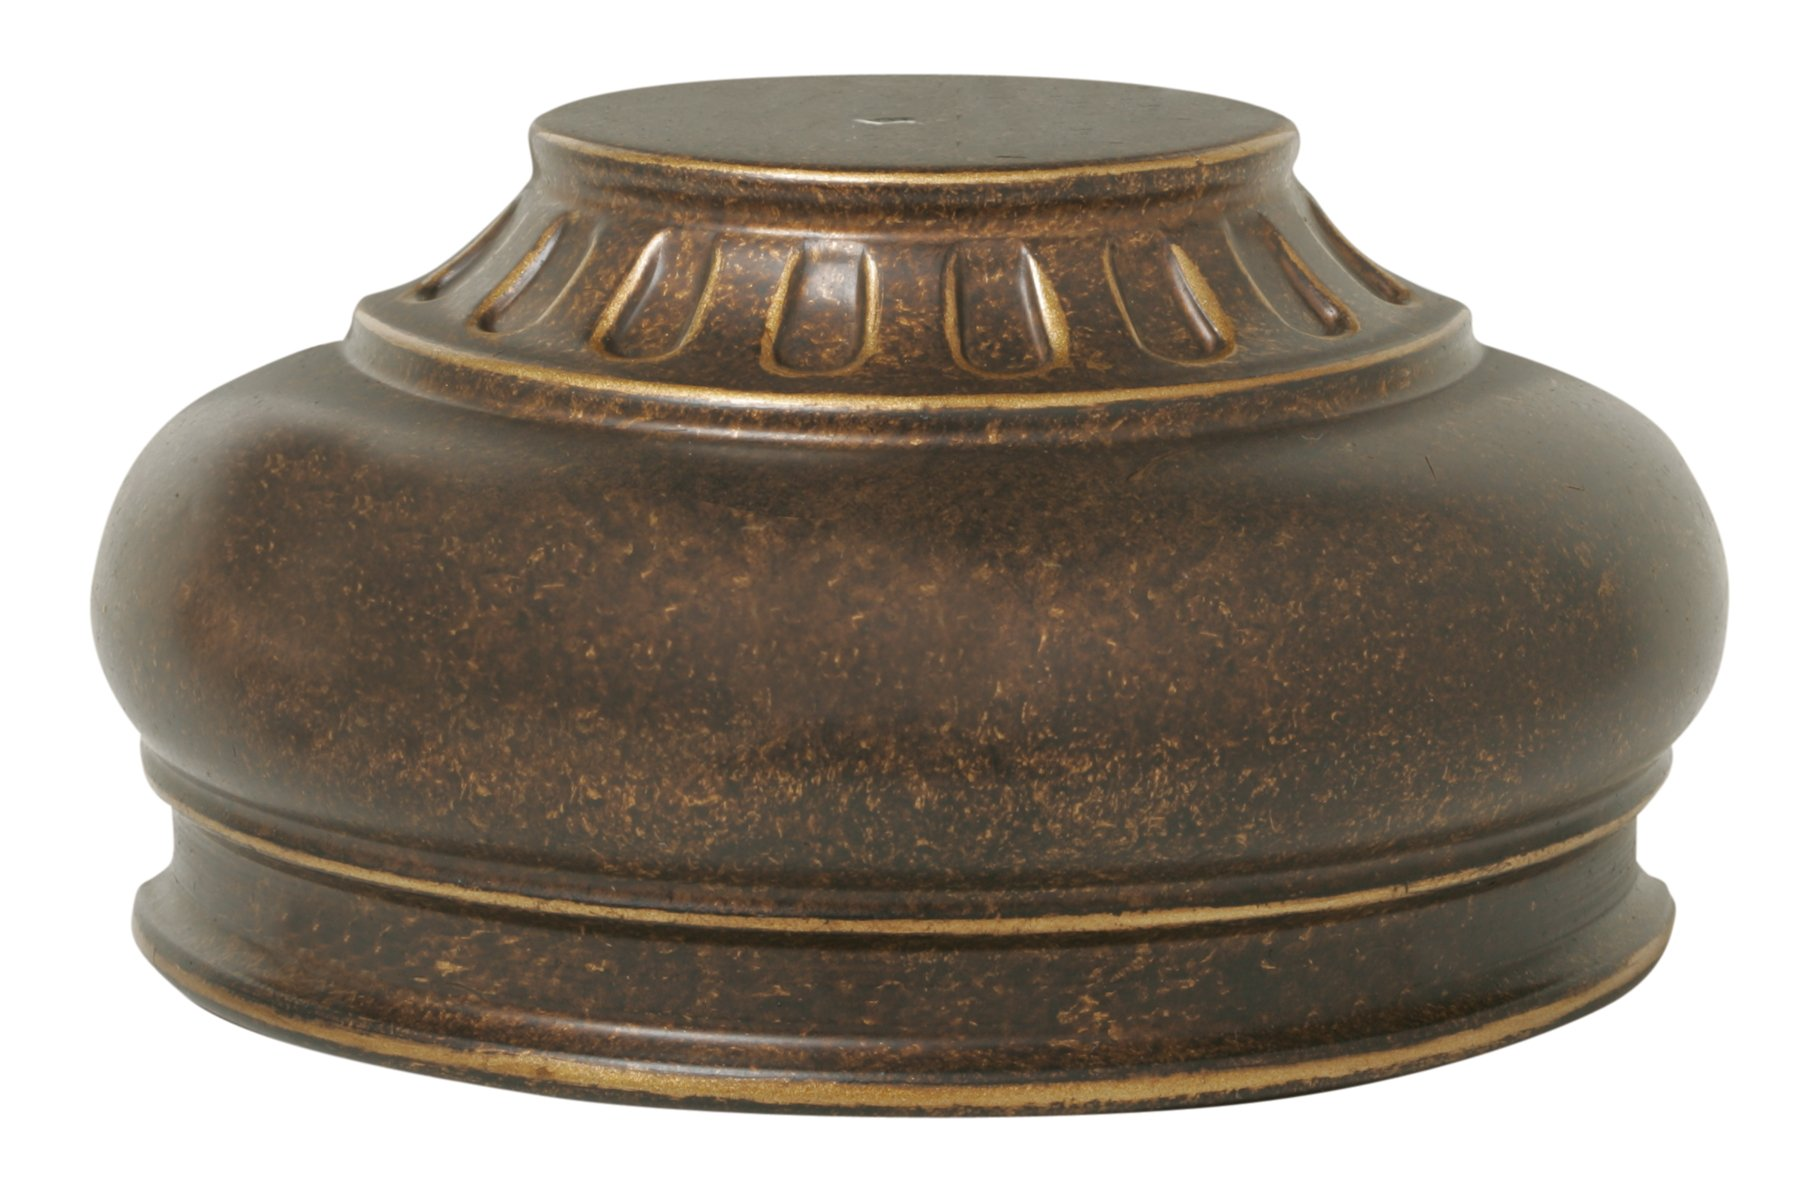 Emerson CFDR25GBZ Ceiling Fan Downrod, 2.5-Inch Long, Gilded Bronze by Emerson (Image #2)